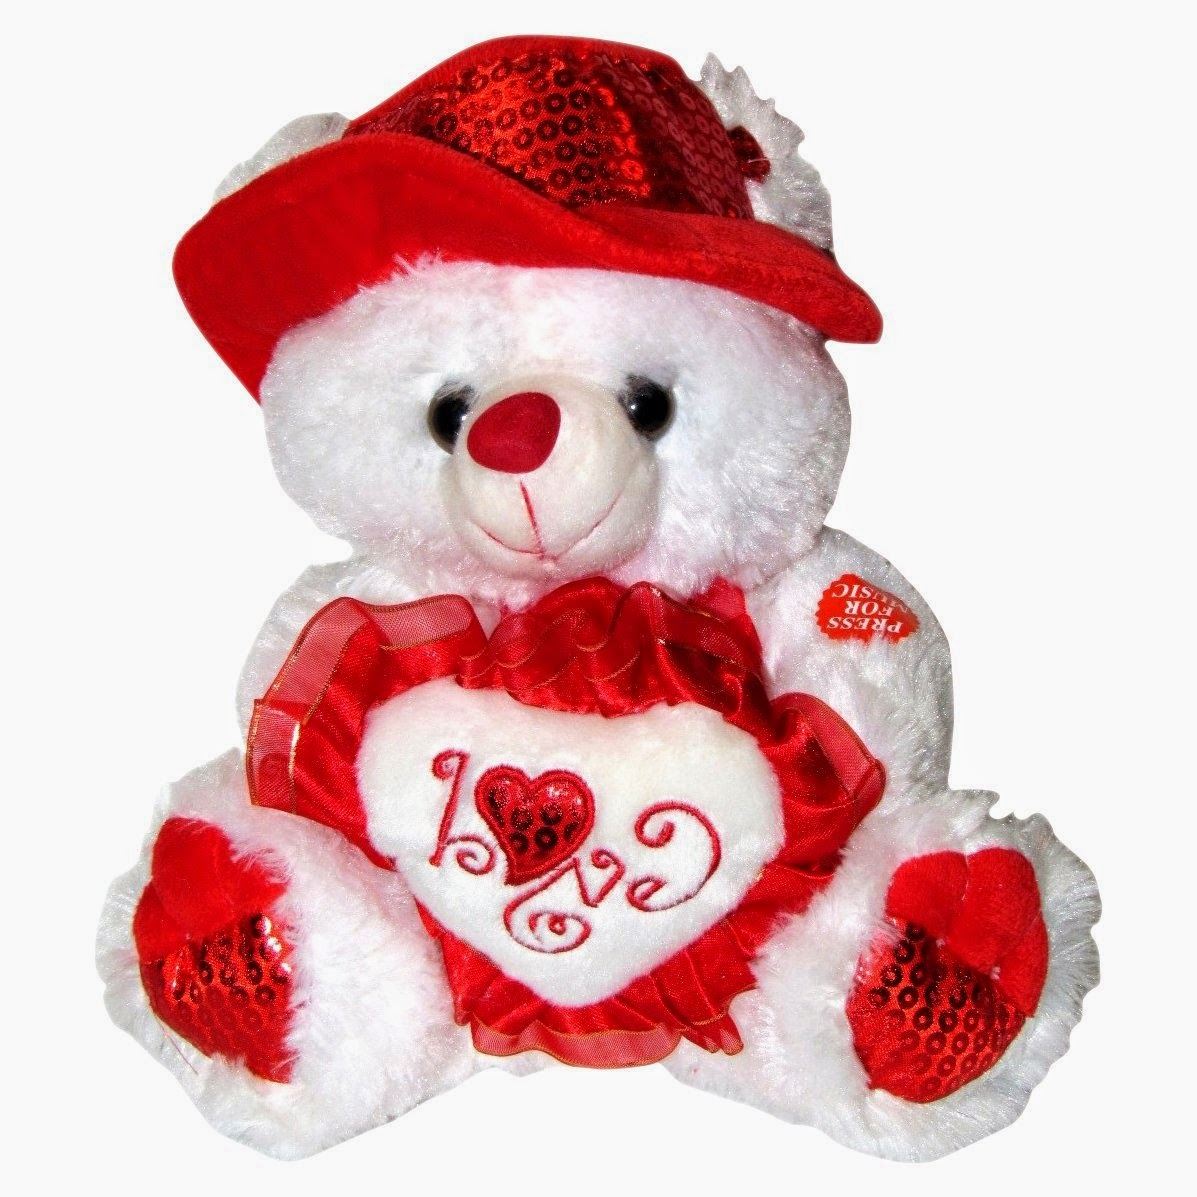 download teddy bears with heart - teddy bear day images for your